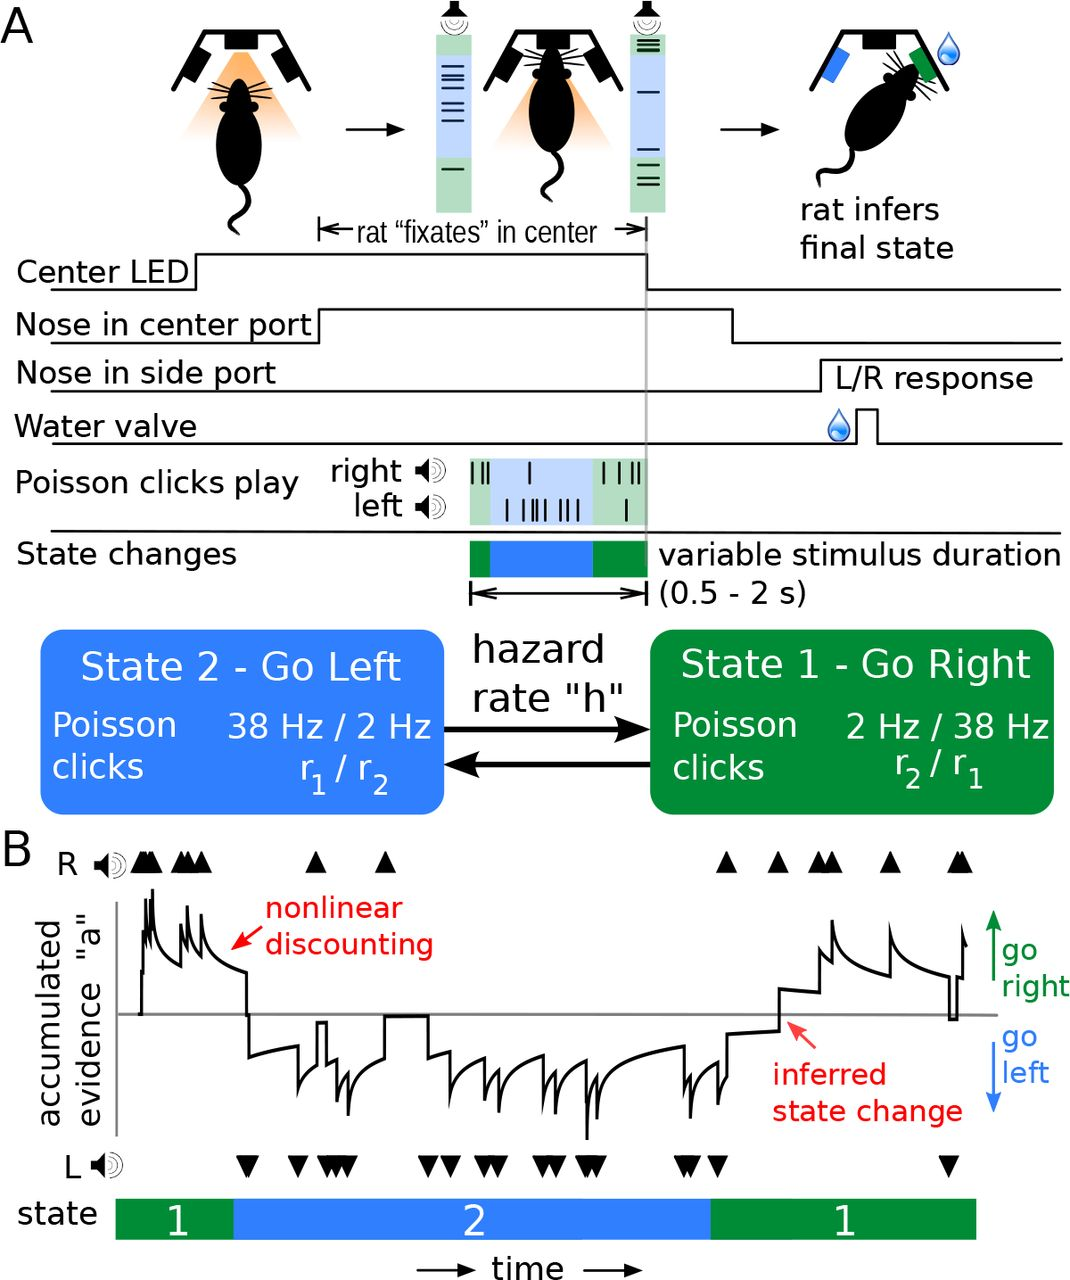 Rats optimally accumulate and discount evidence in a dynamic